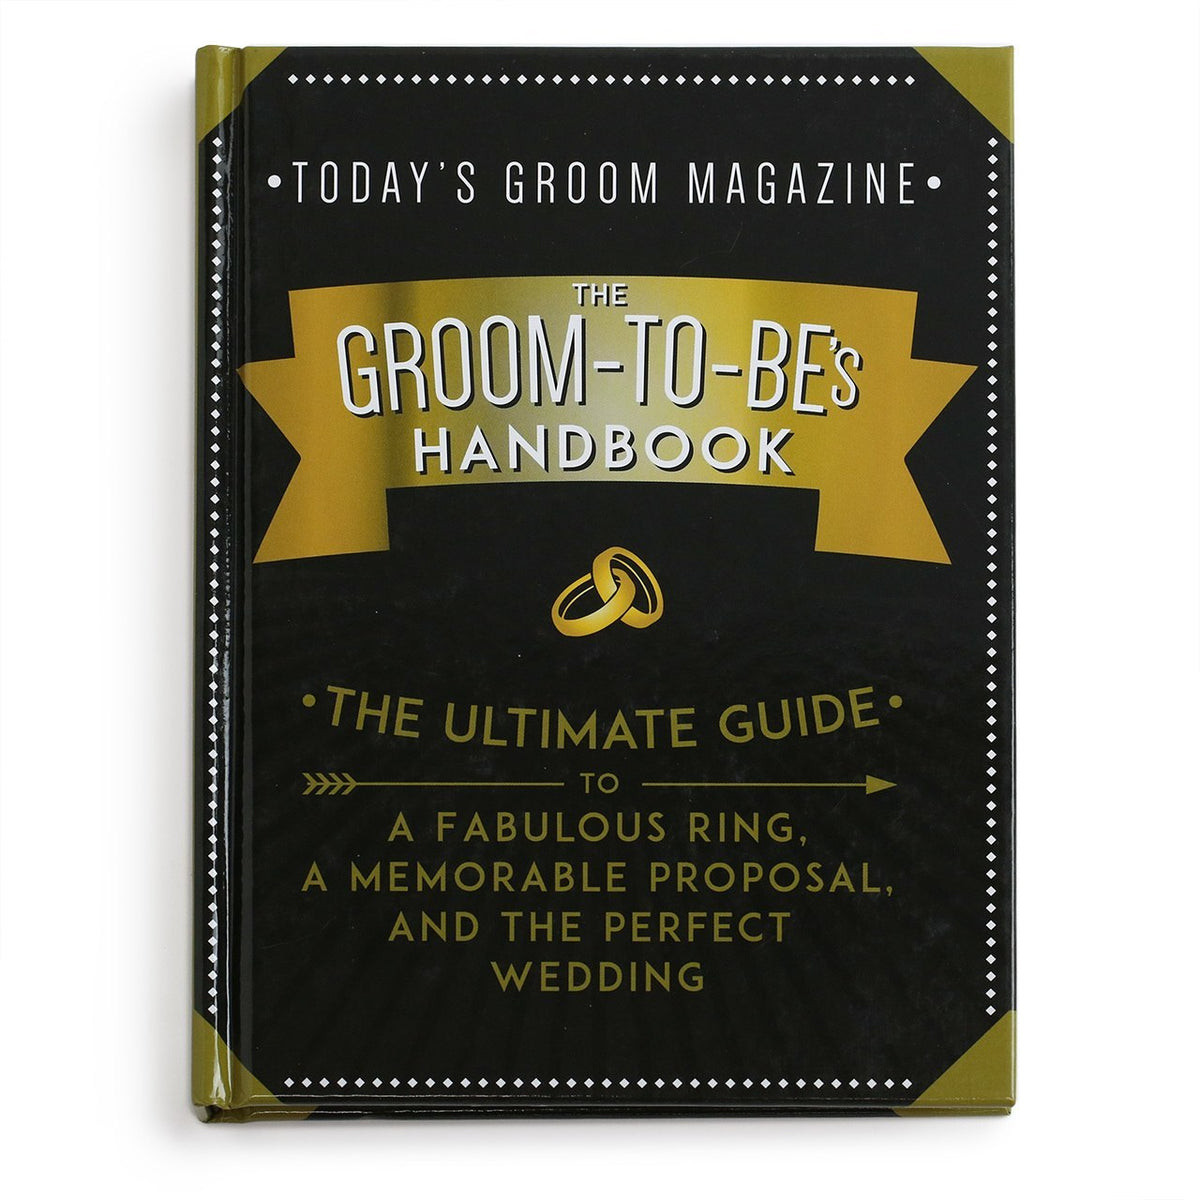 The Groom-To-Be's Handbook: The Ultimate Guide to a Fabulous Ring, a Memorable Proposal, & the Perfect Wedding